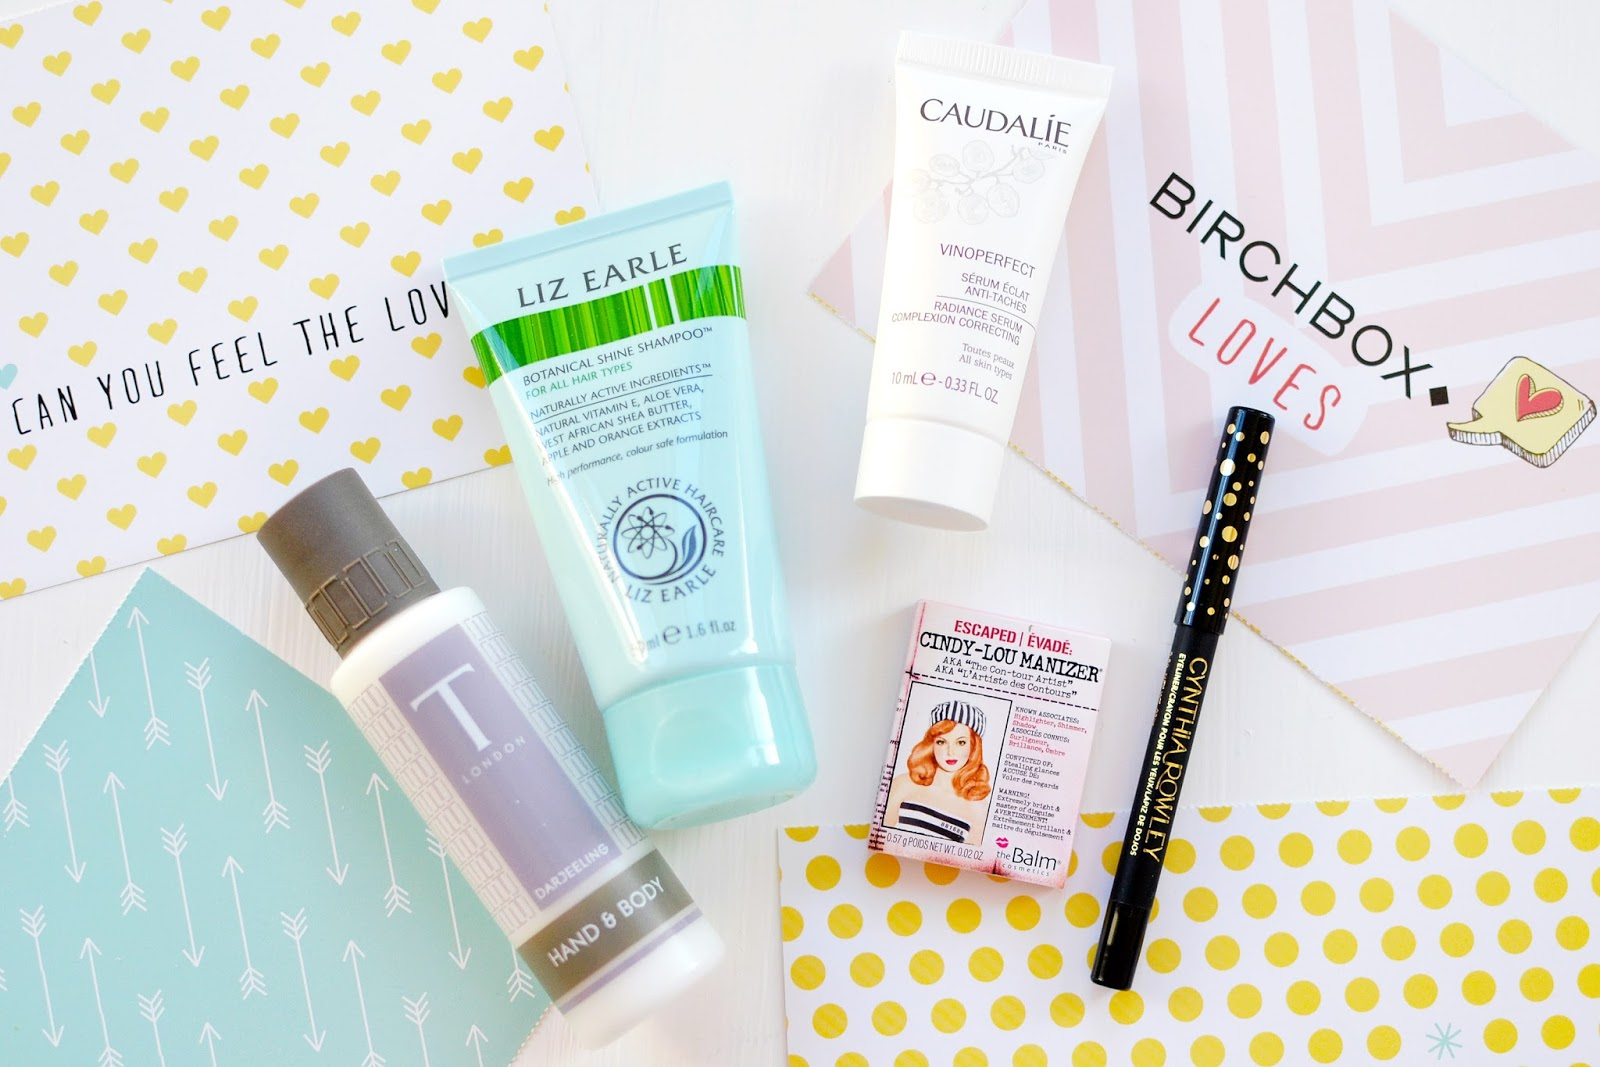 birchbox february 2015, birchbox uk february 2015